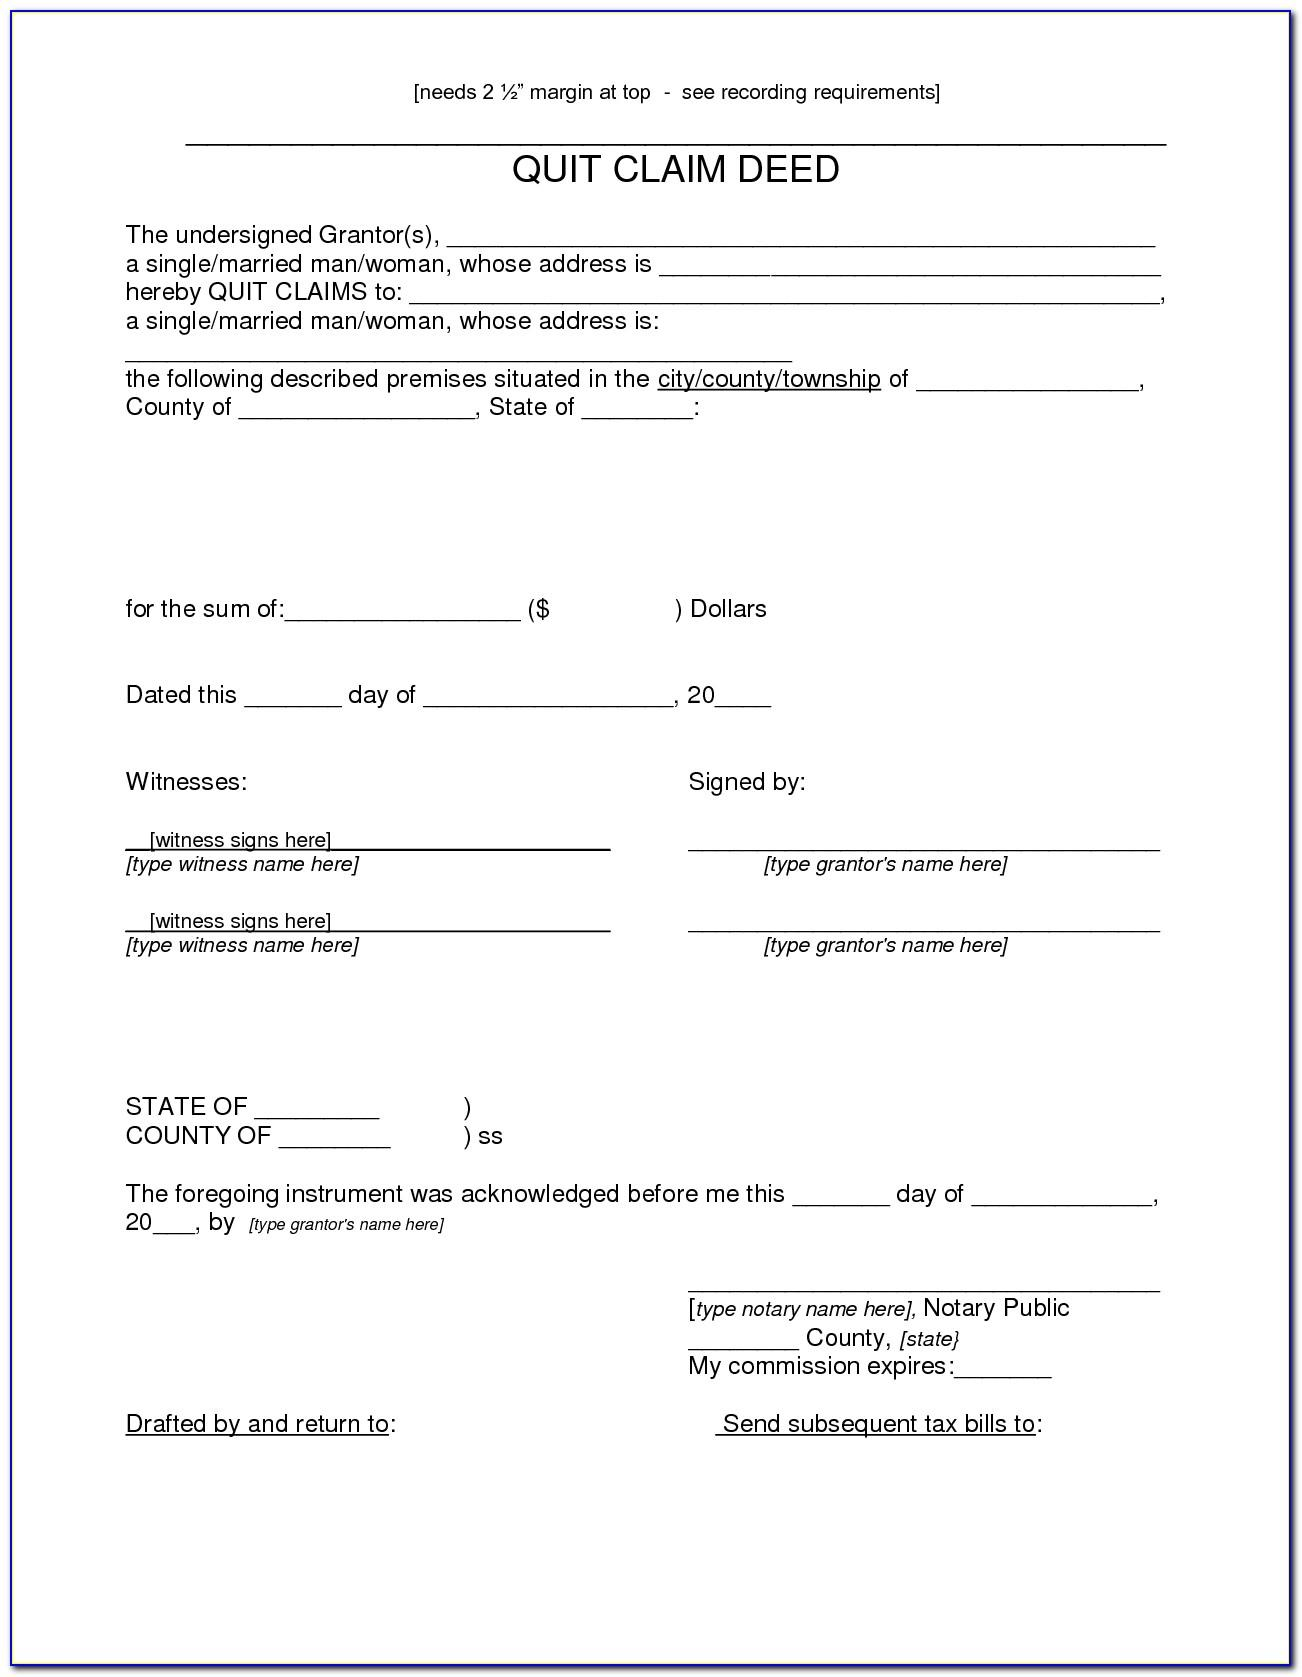 Quit Claim Deed Template Texas